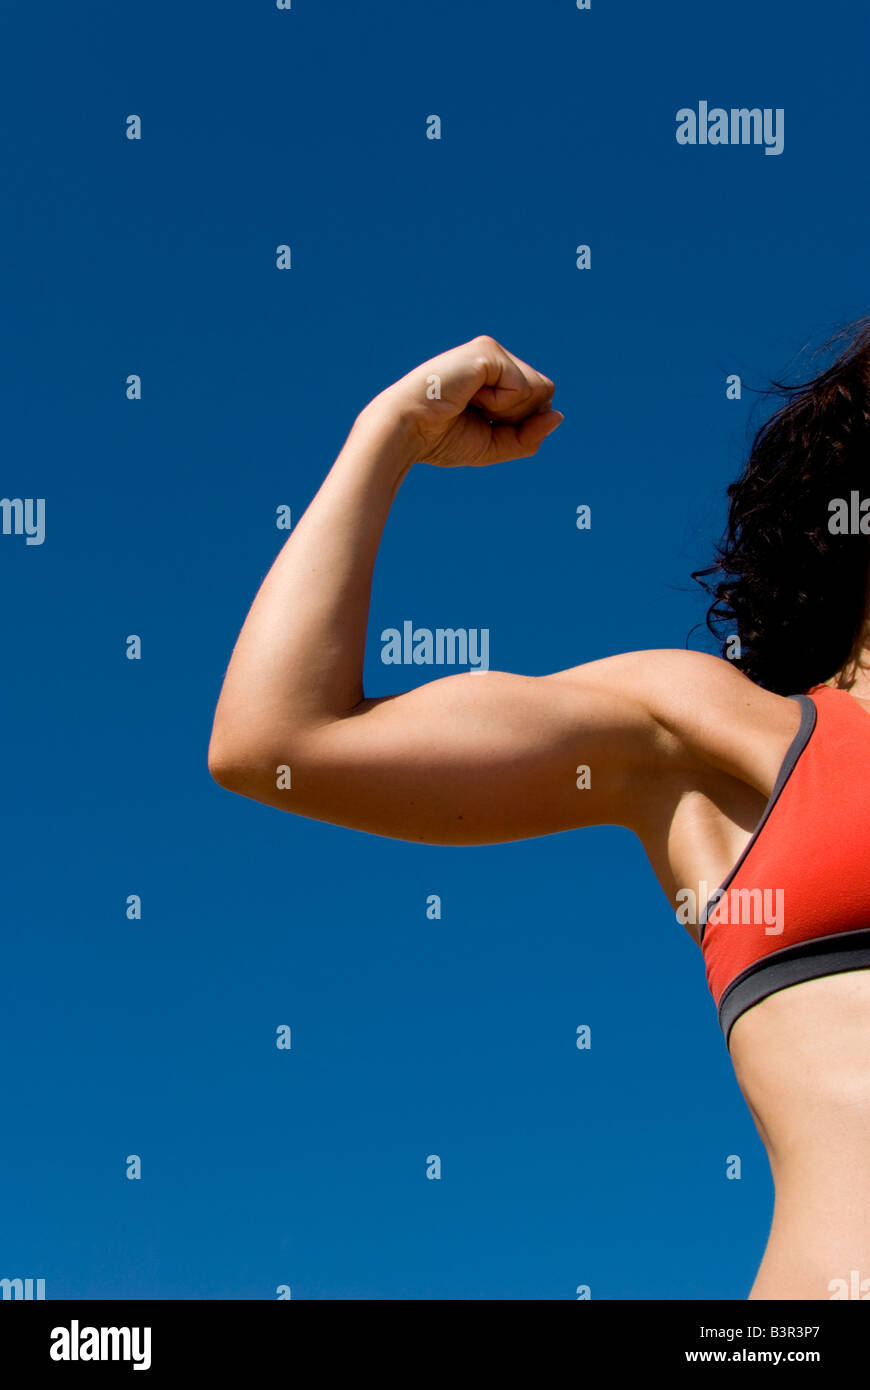 Model Released sporty female arm flexing biceps against a clear blue sky - Stock Image